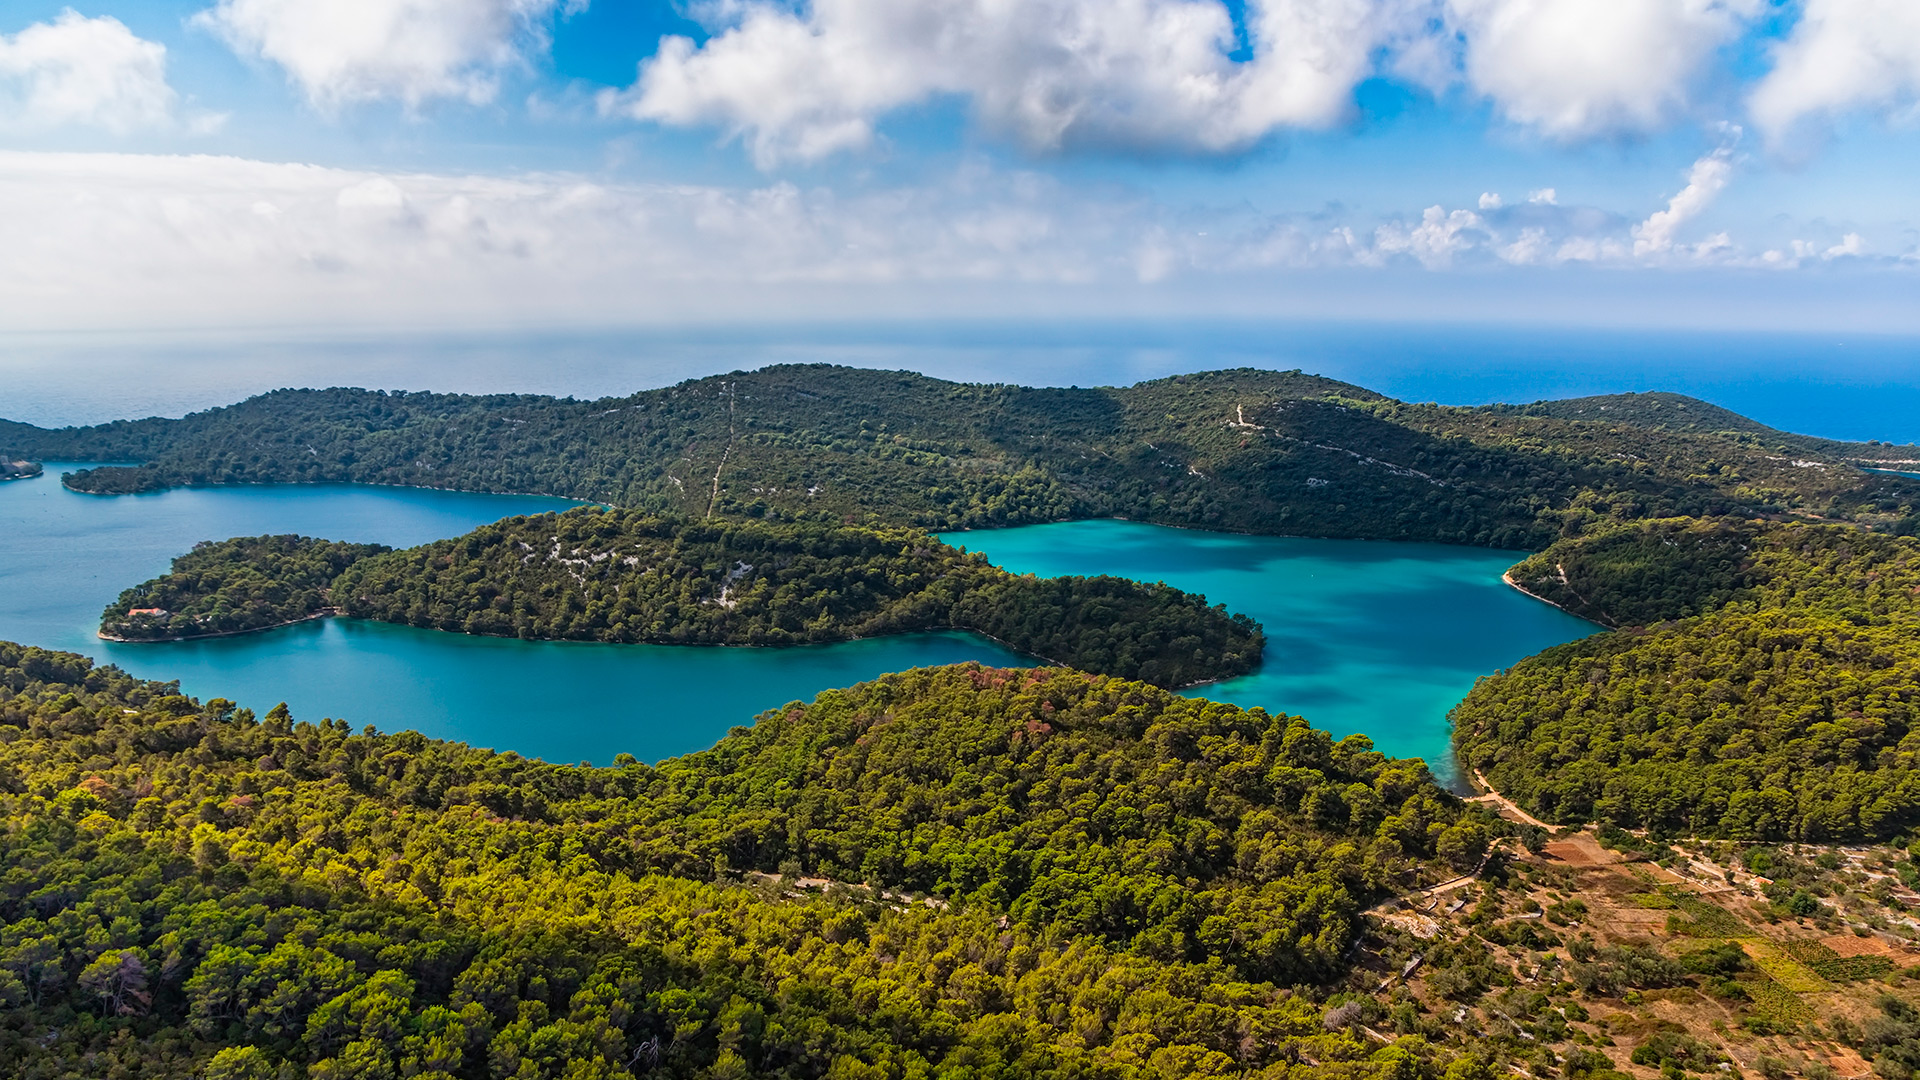 The Veliko lake, Mljet, Croatia - Adriatic sailing routes of SimpleSail